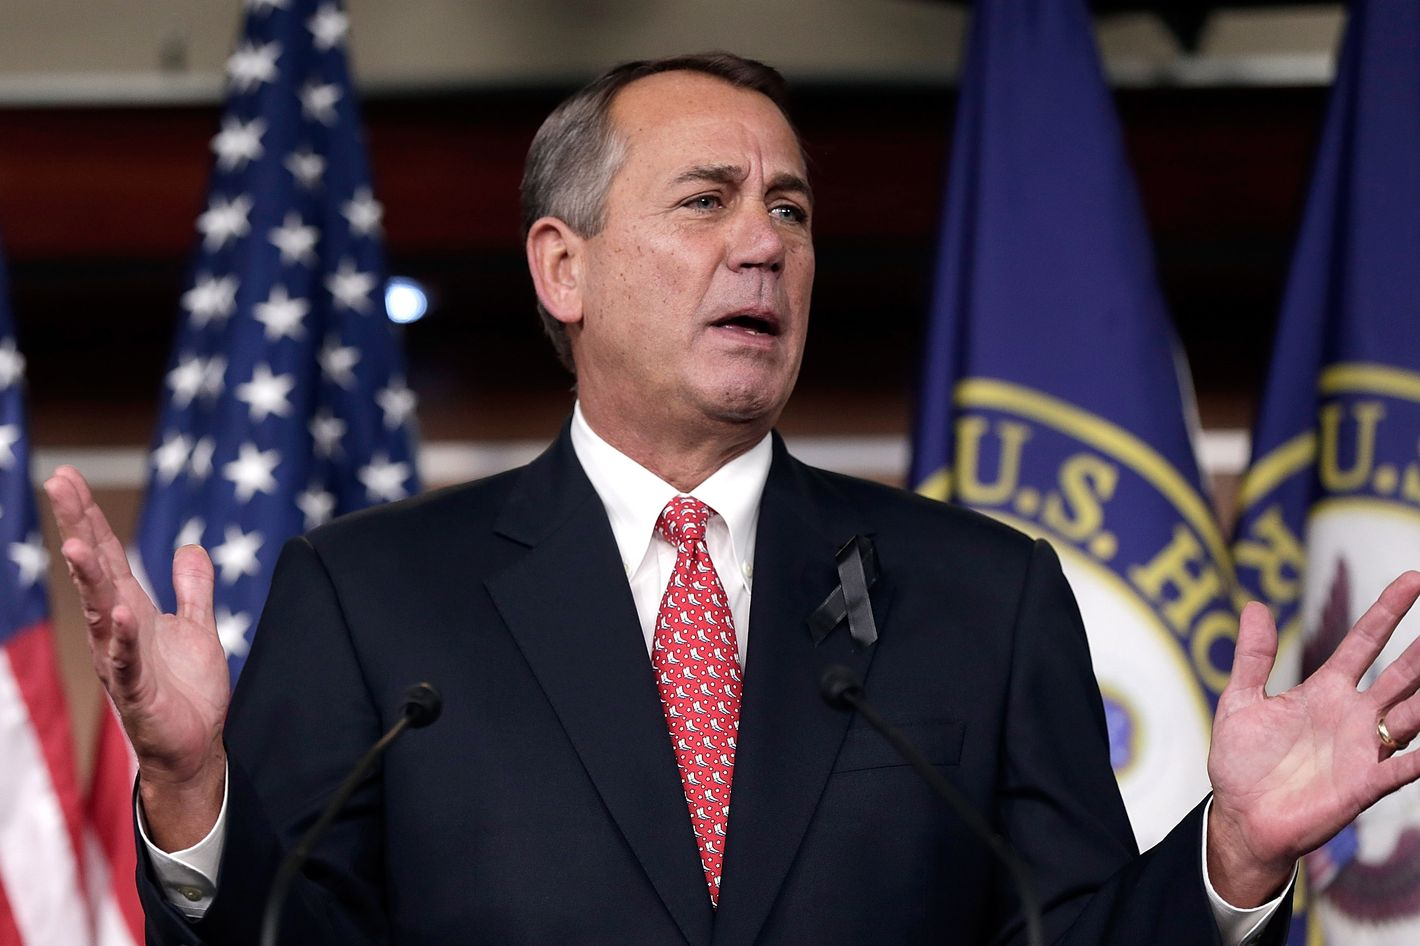 "WASHINGTON, DC - DECEMBER 12:  U.S. Speaker of the House John Boehner (R-OH) answers questions during a press conference December 12, 2013 in Washington, DC. When asked during the press conference if he would press ultra-conservative groups to tone down their criticism of a pending budget deal, Boehner said ""I don't care what they do.""  (Photo by Win McNamee/Getty Images)"